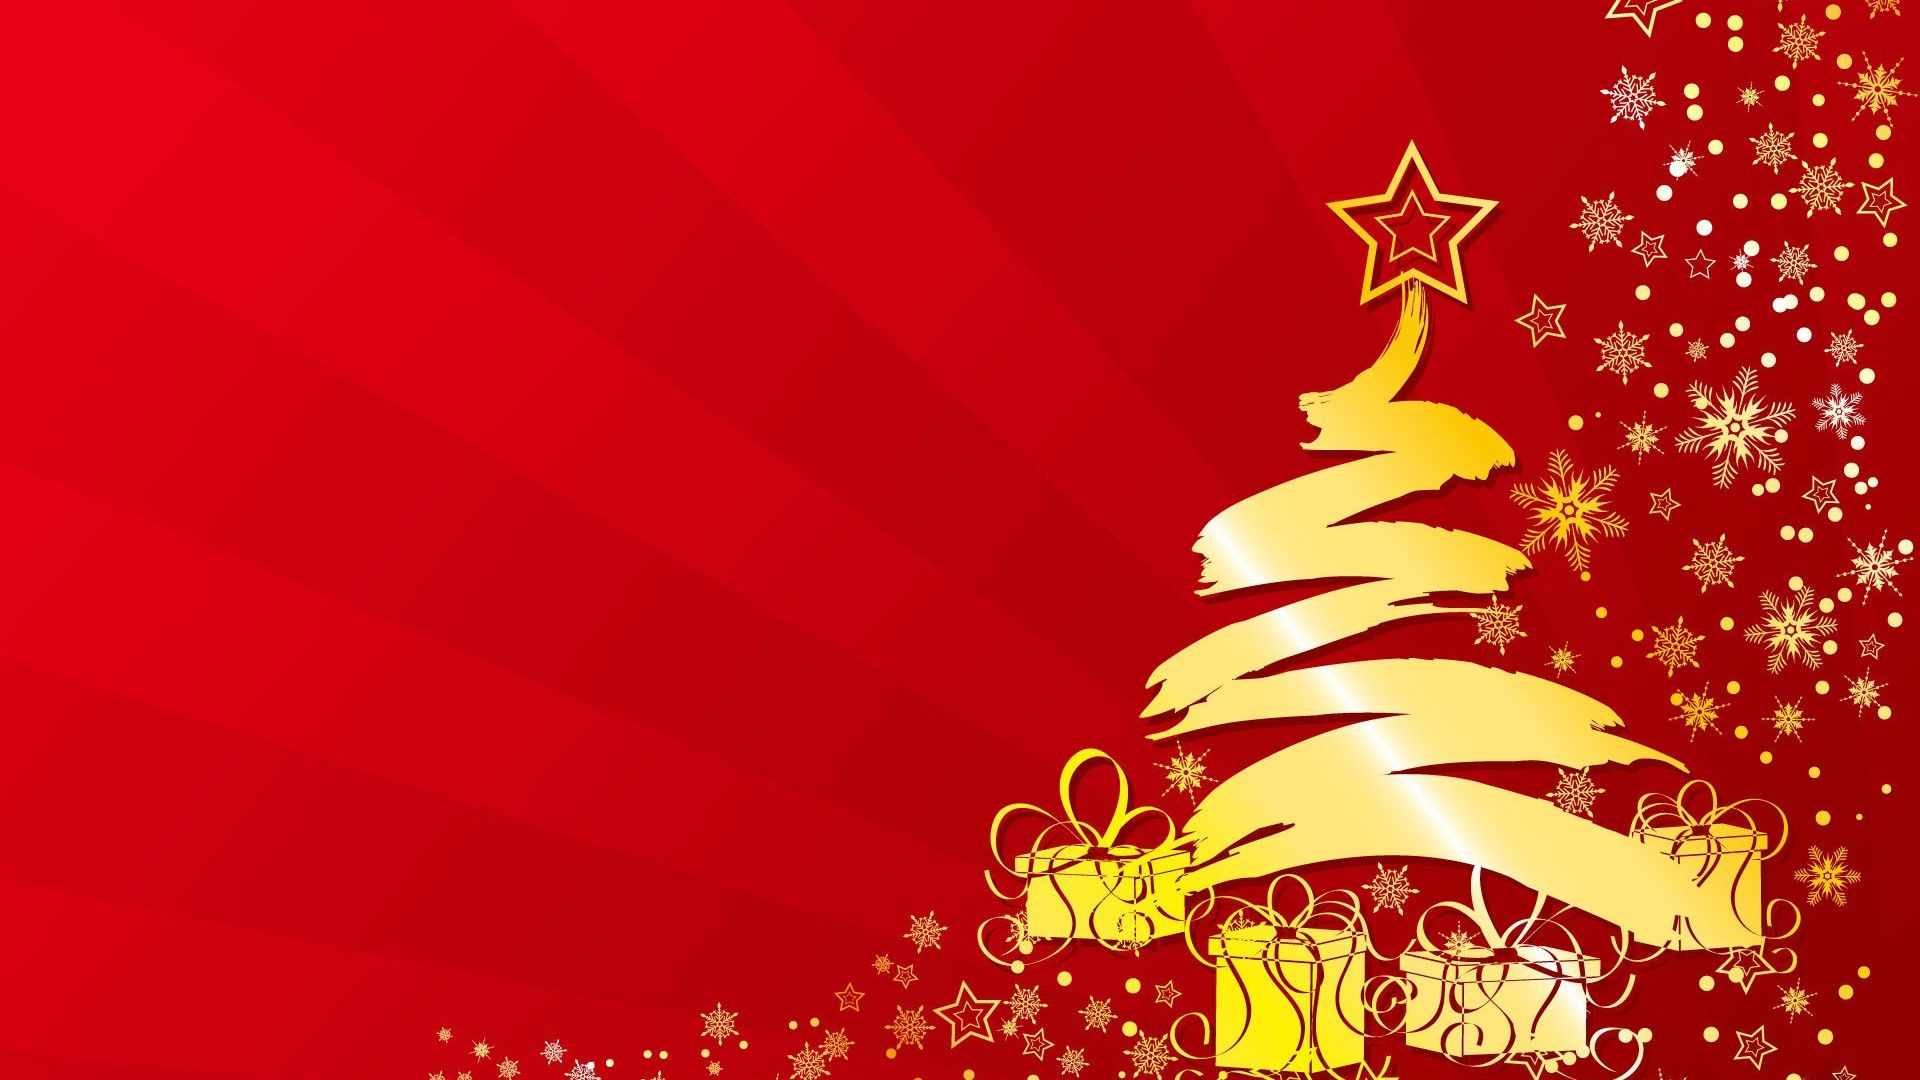 Collection Of Merry Christmas Background Wallpaper On Wall Papers